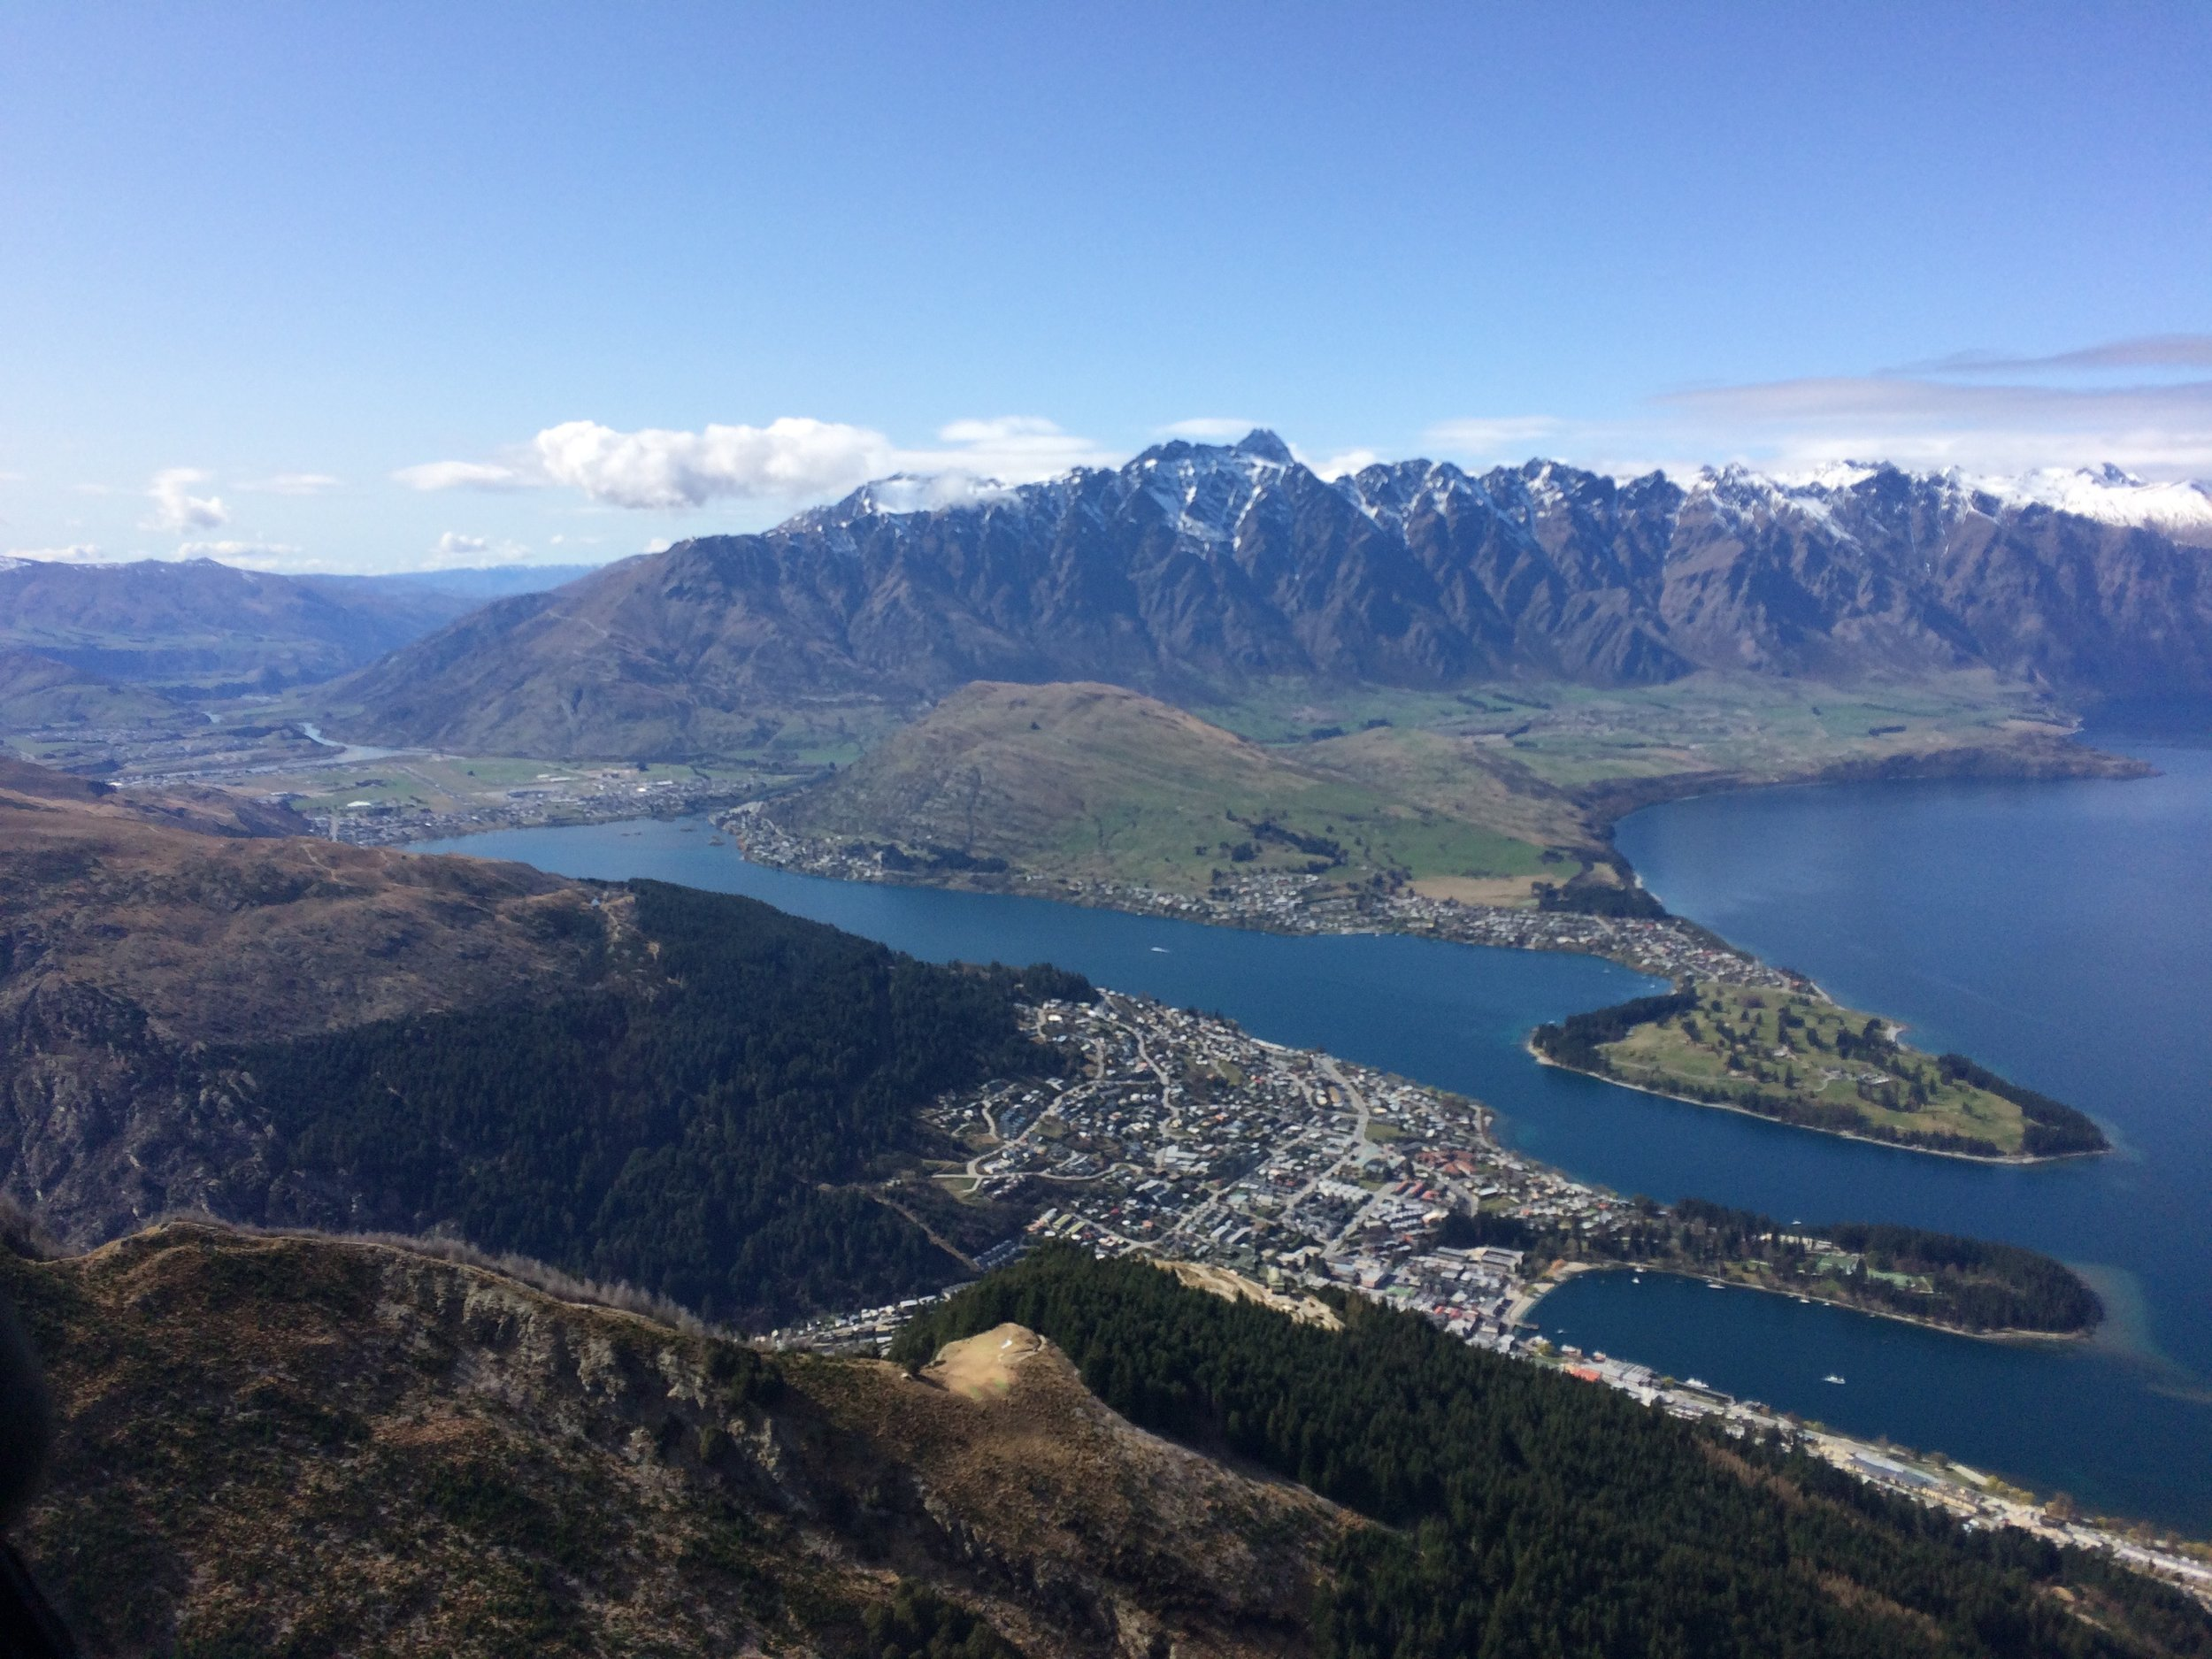 Queenstown From Atop the Gondola